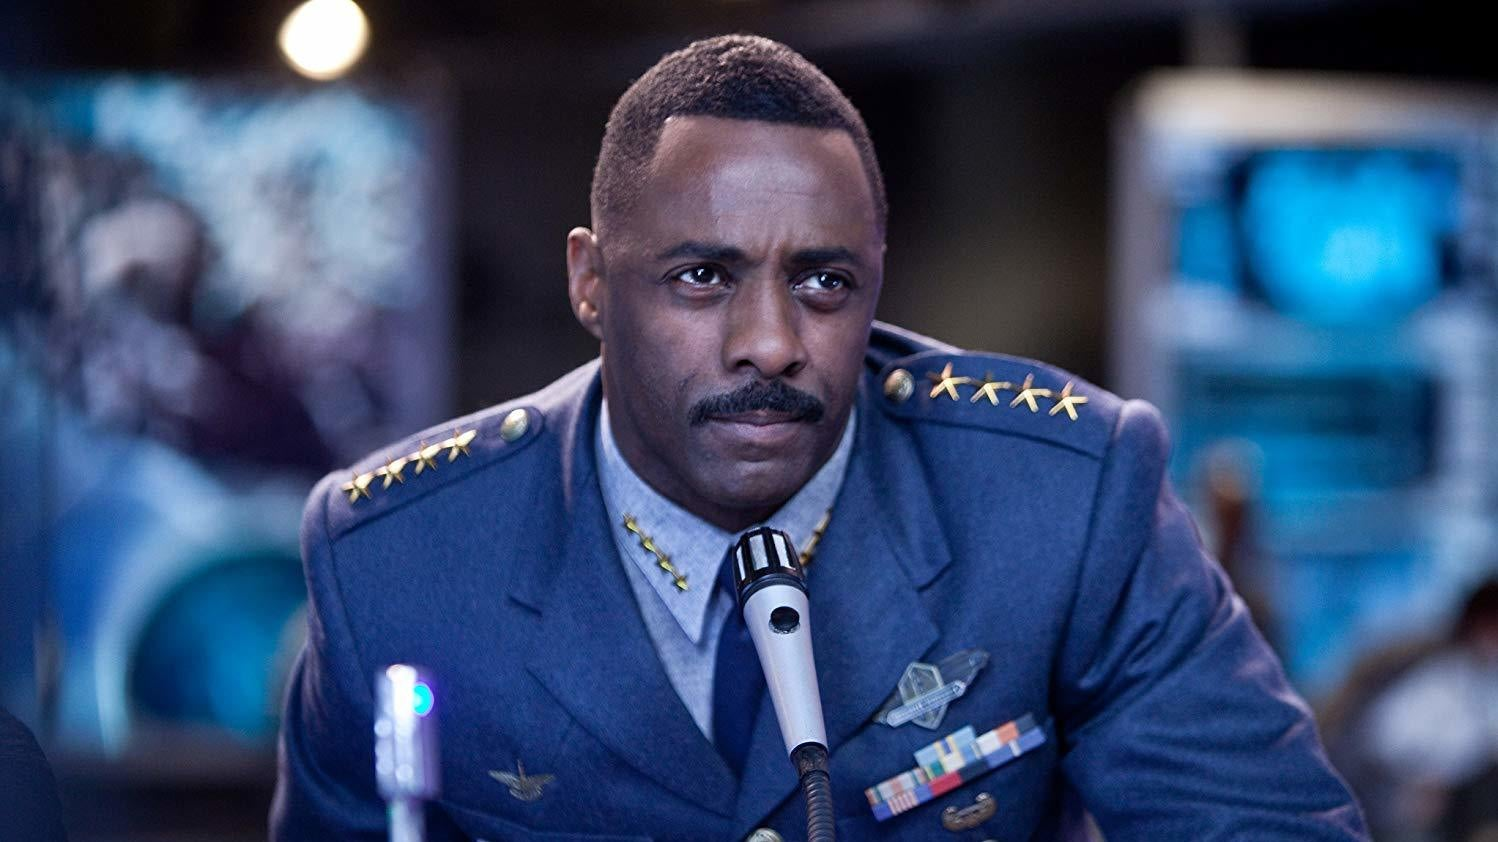 Report: Idris Elba Is Playing A Character Other Than Deadshot In James Gunn's The Suicide Squad